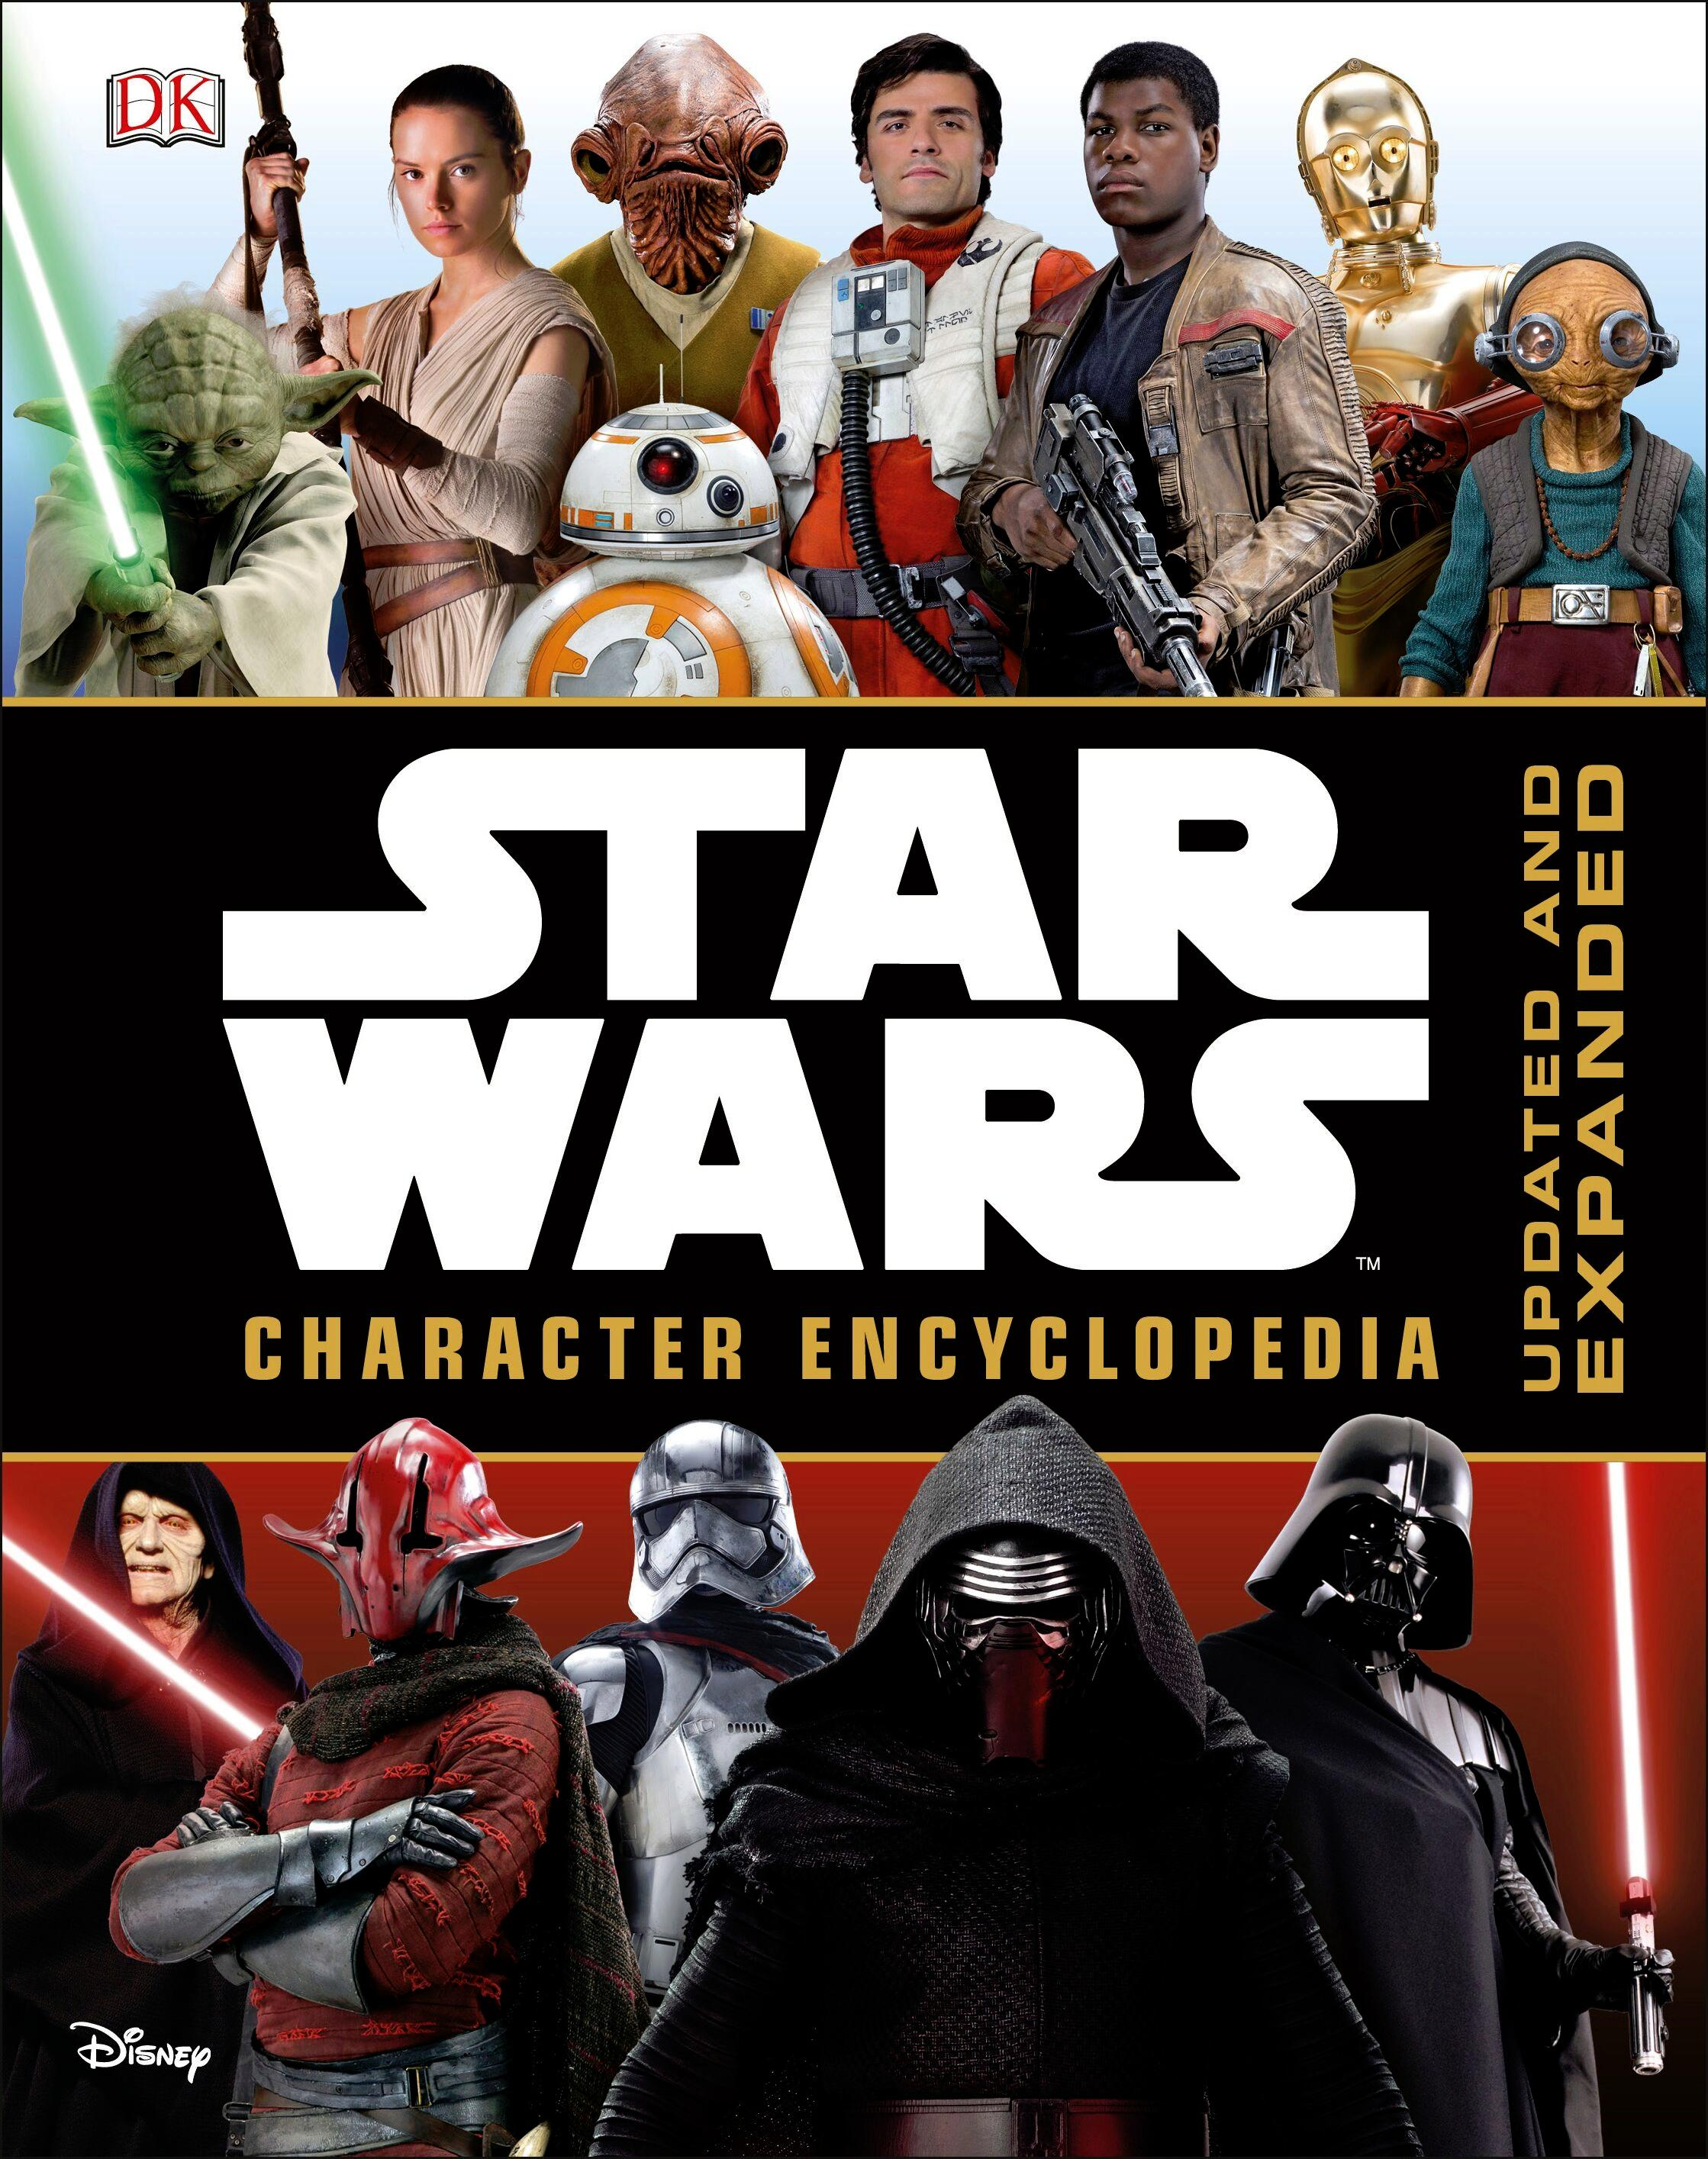 'Star Wars: Character Encyclopedia' by Pablo Hidalgo (reviewed by Skuldren)